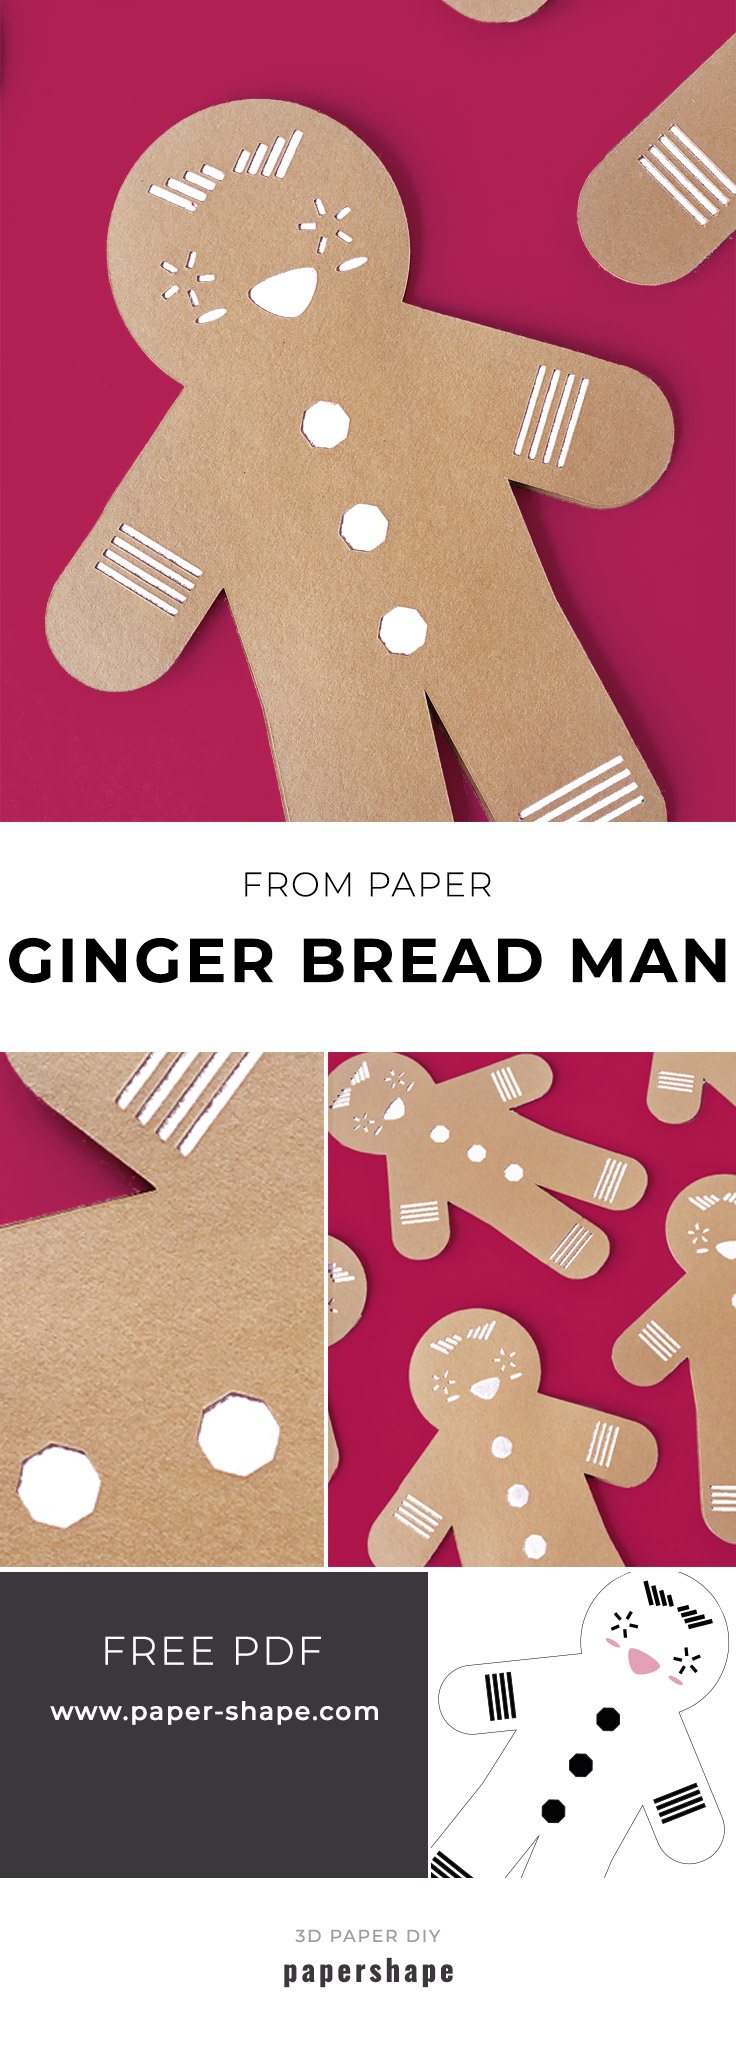 christmas crafts: diy ginger bread man from paper with template #papershape